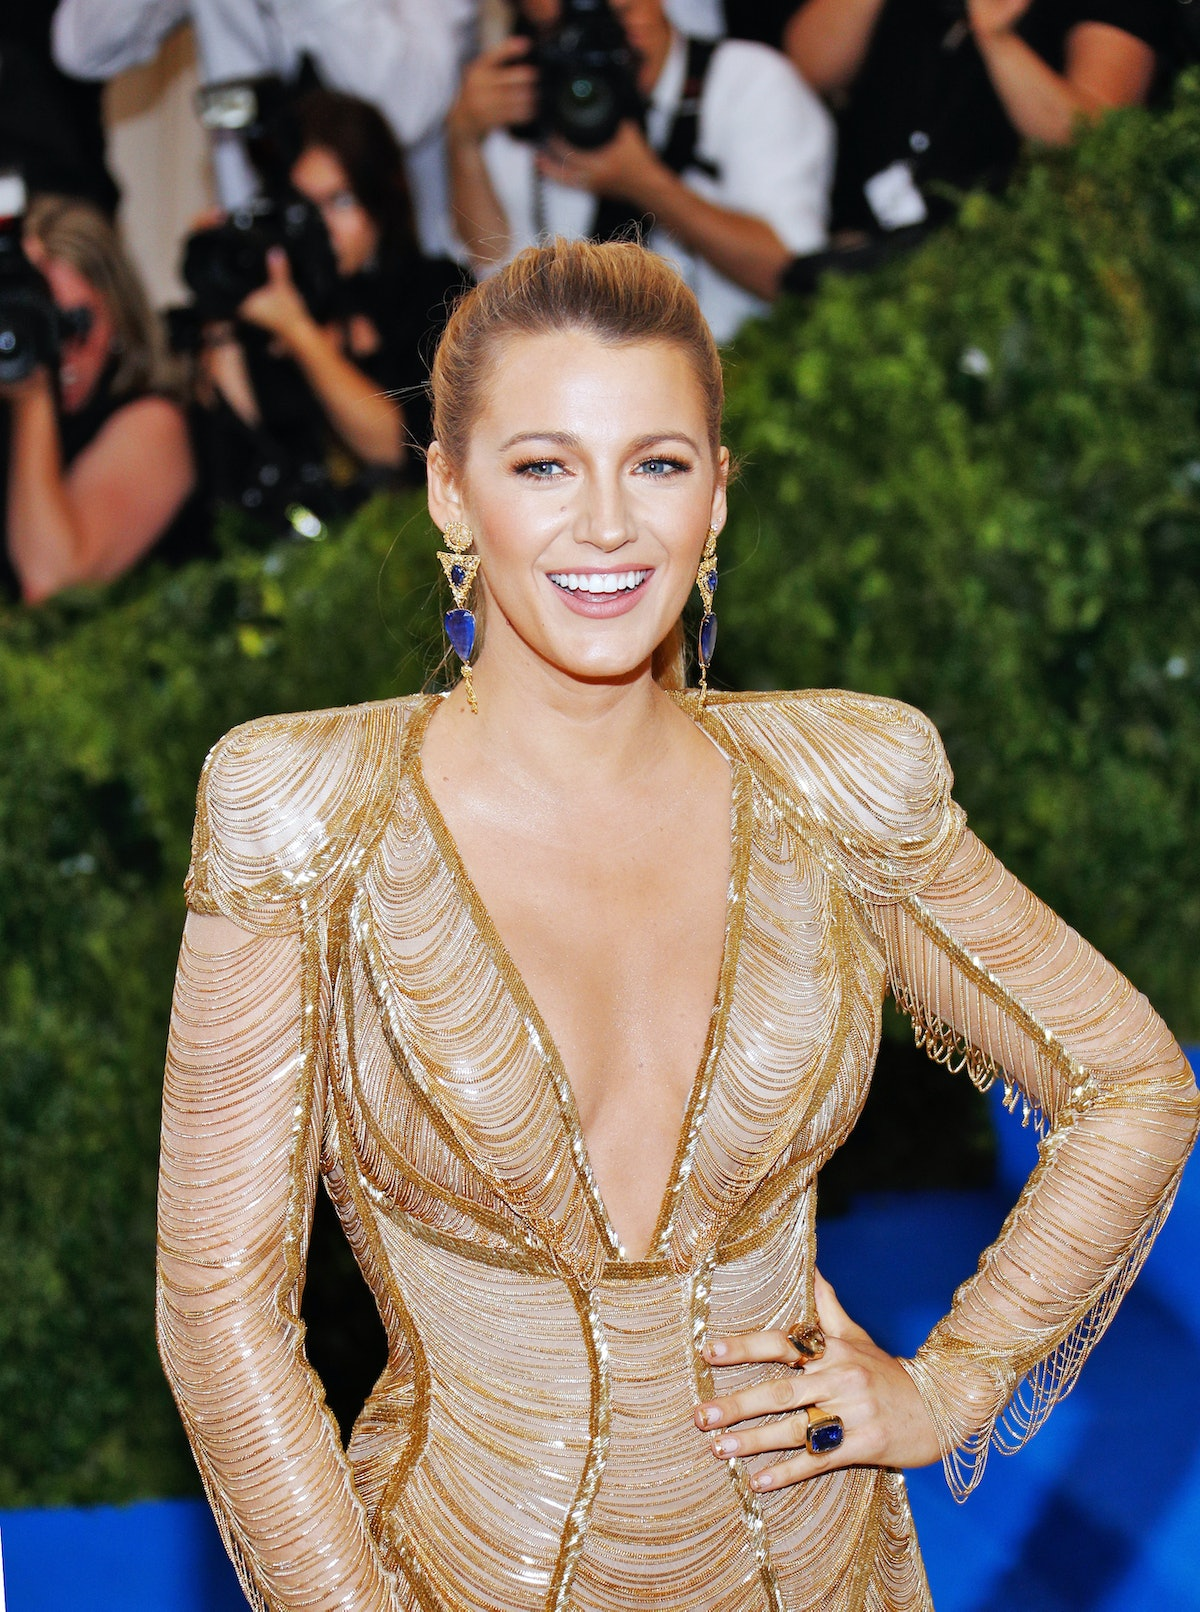 Blake Lively and Ryan Reynolds attend 'Rei Kawakubo/Comme des Garçons:Art of the In-Between' Costume...